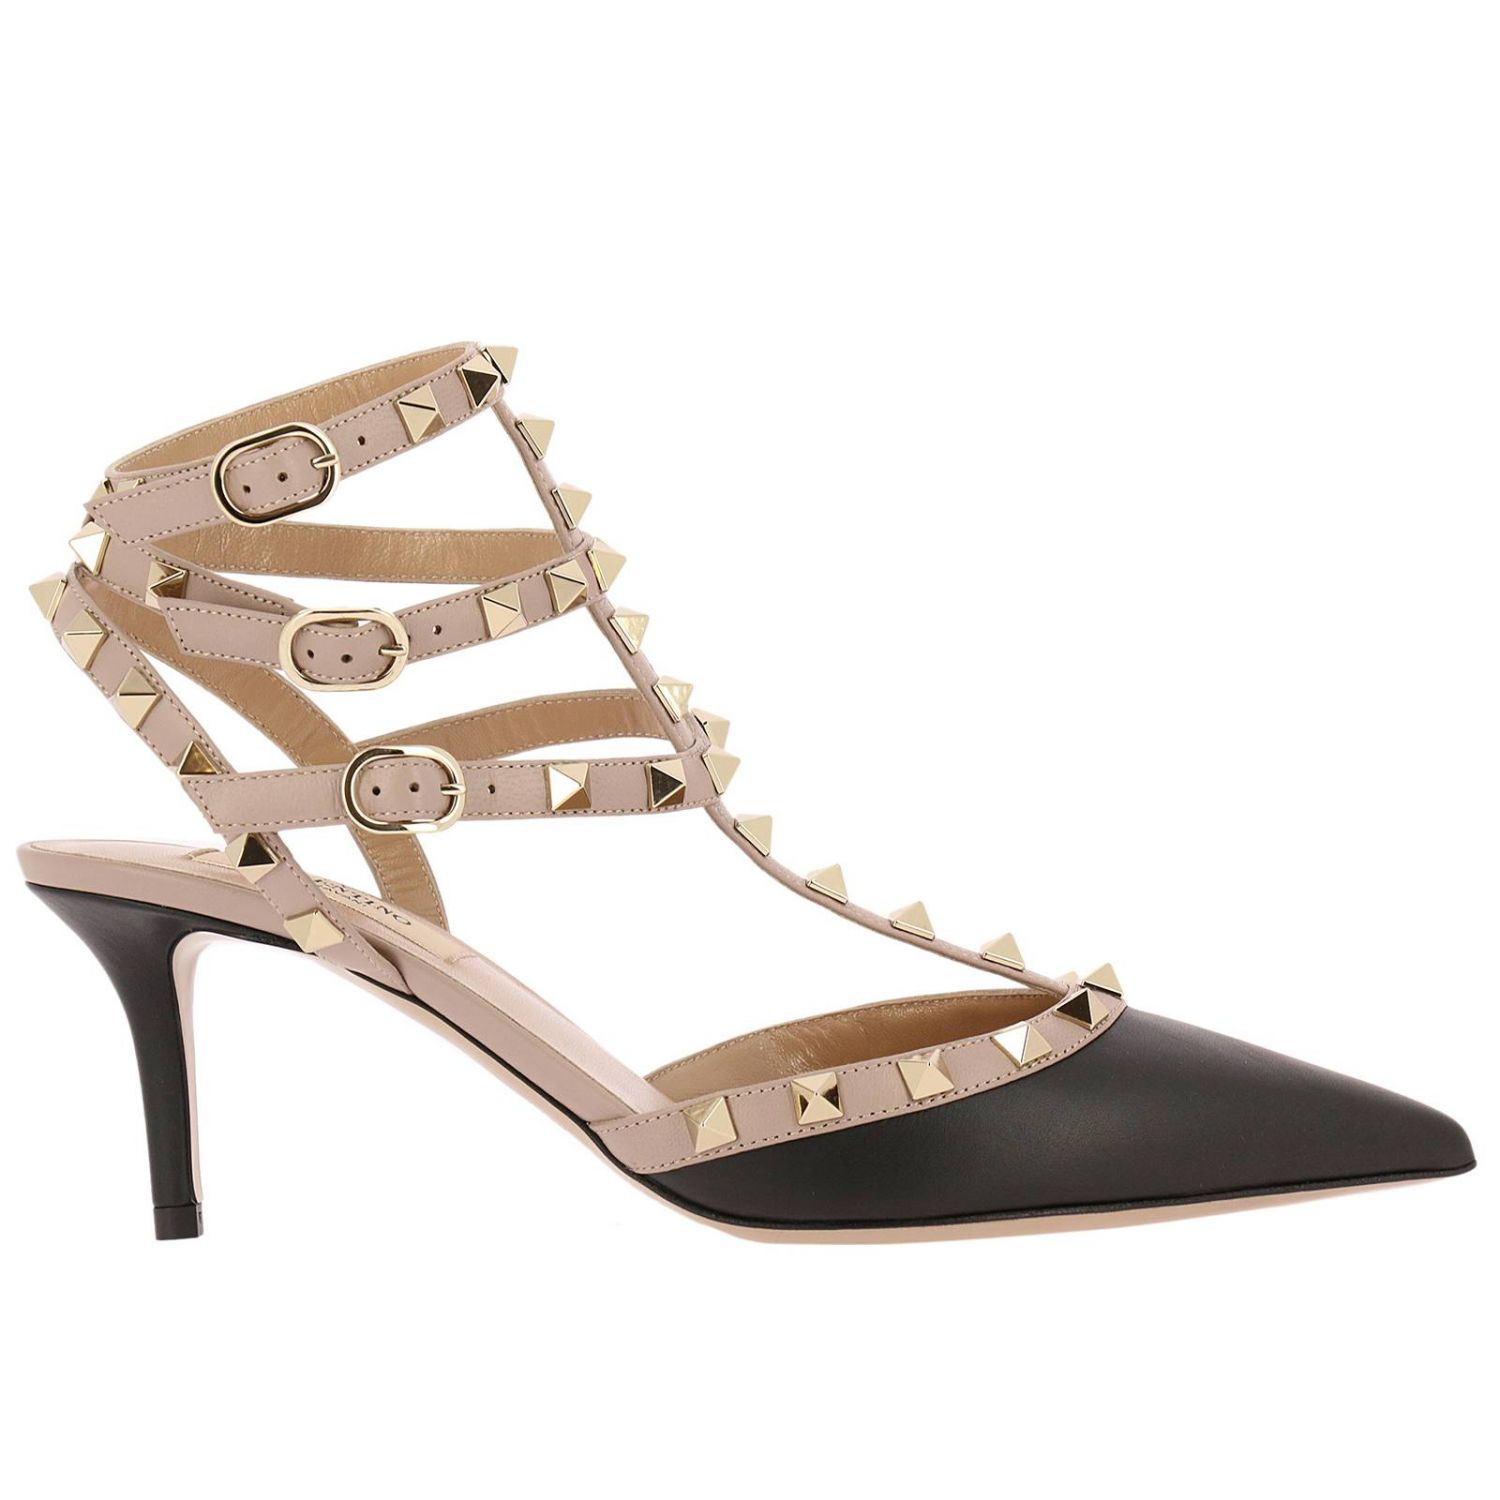 Pumps Valentino Rockstud Ankle Strap In Real Bicolor Smooth Leather With Micro Metal Studs 8331589